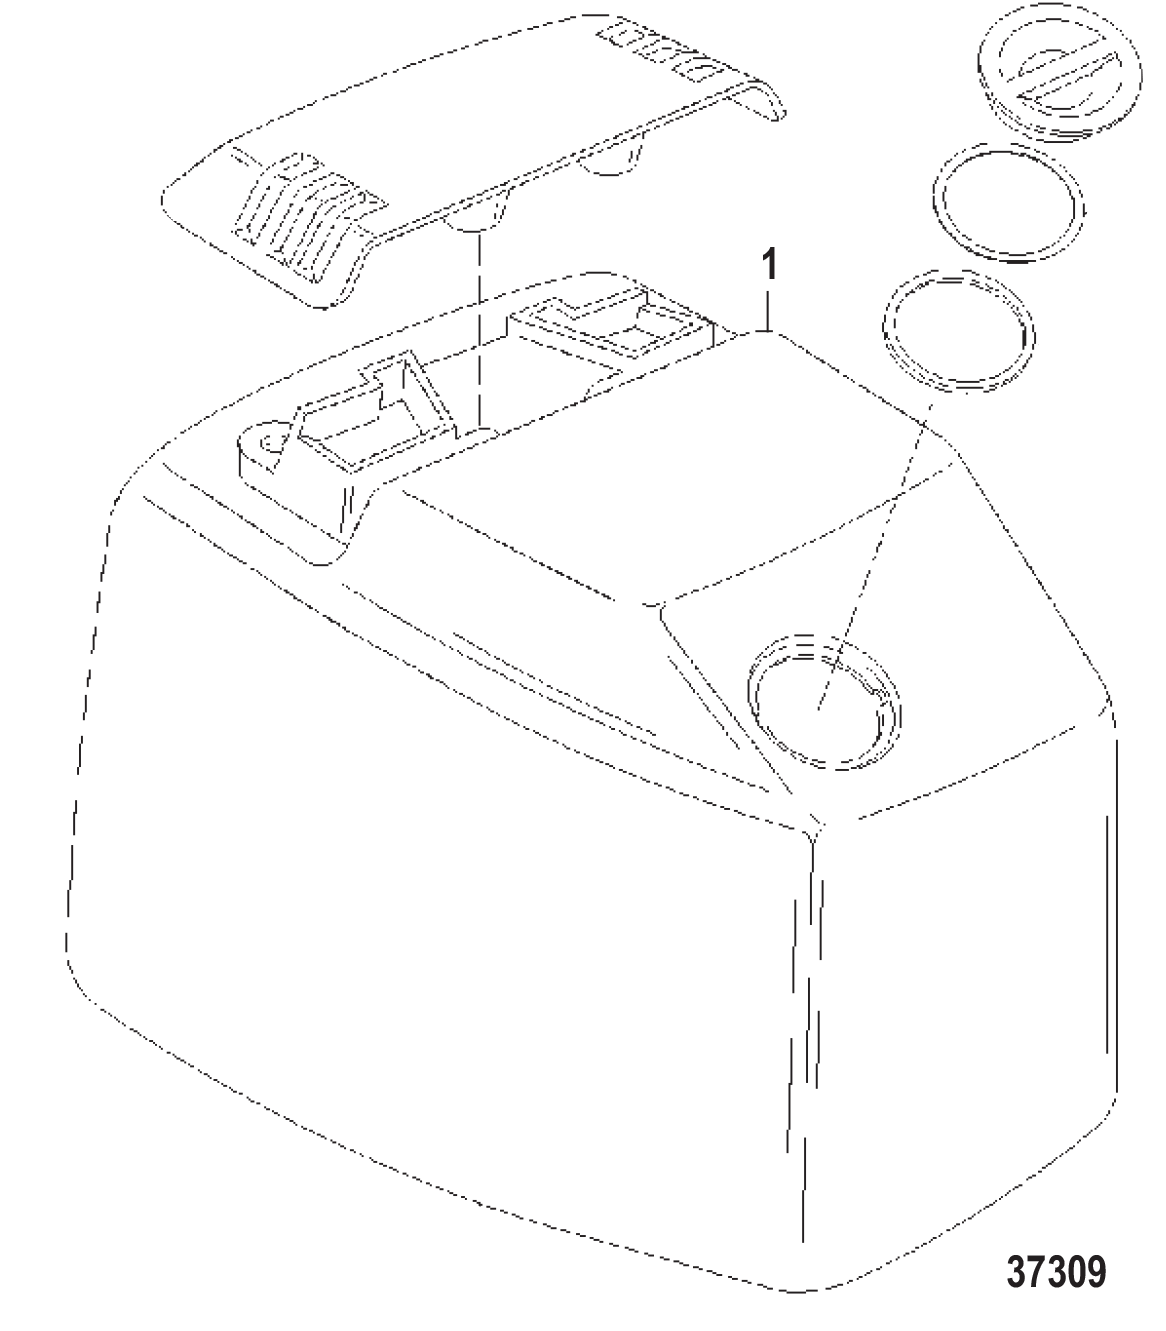 hight resolution of top cowl s n usa 0g301751 bel 9885505 and up diagram 37309